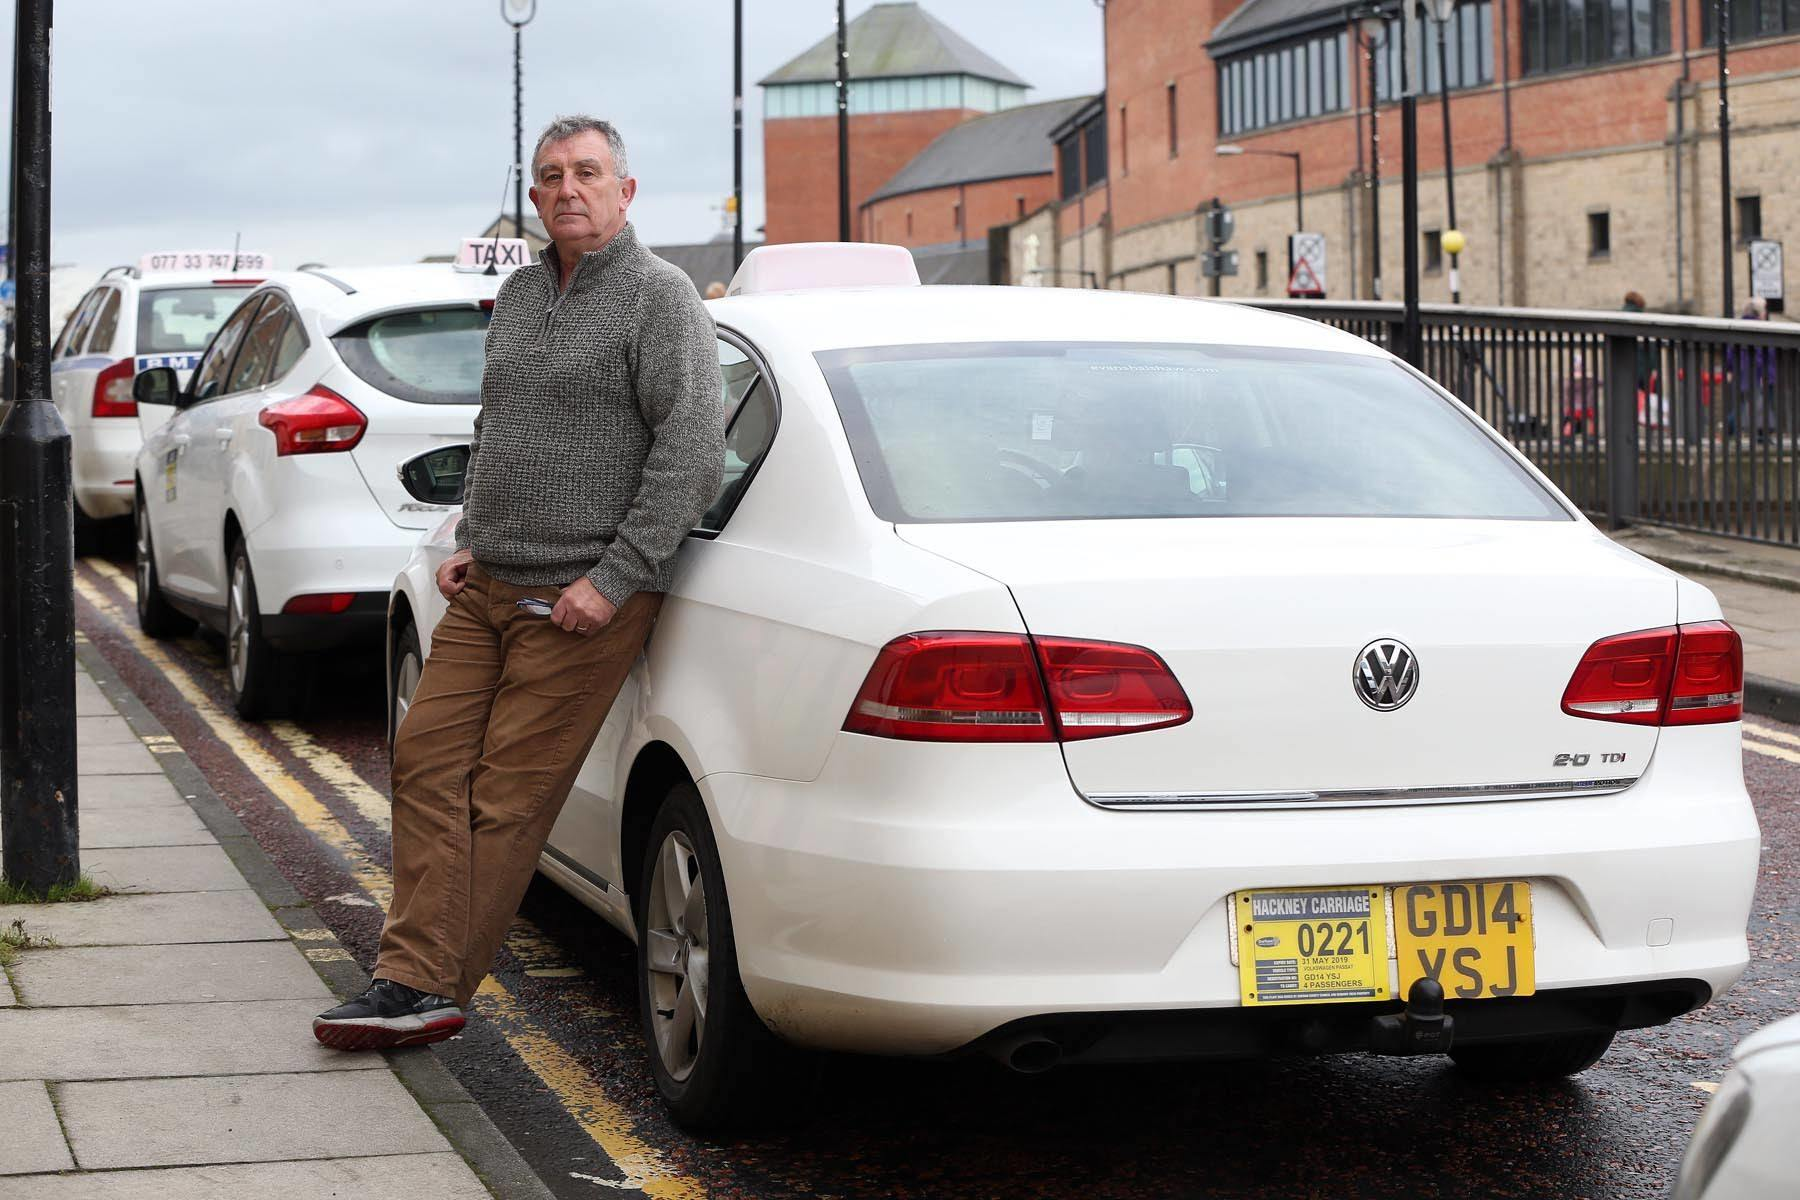 Taxi driver Neville Forbes is unhappy about the way Durham County Council awards its education contracts 			       Picture: CHRIS BOOTH